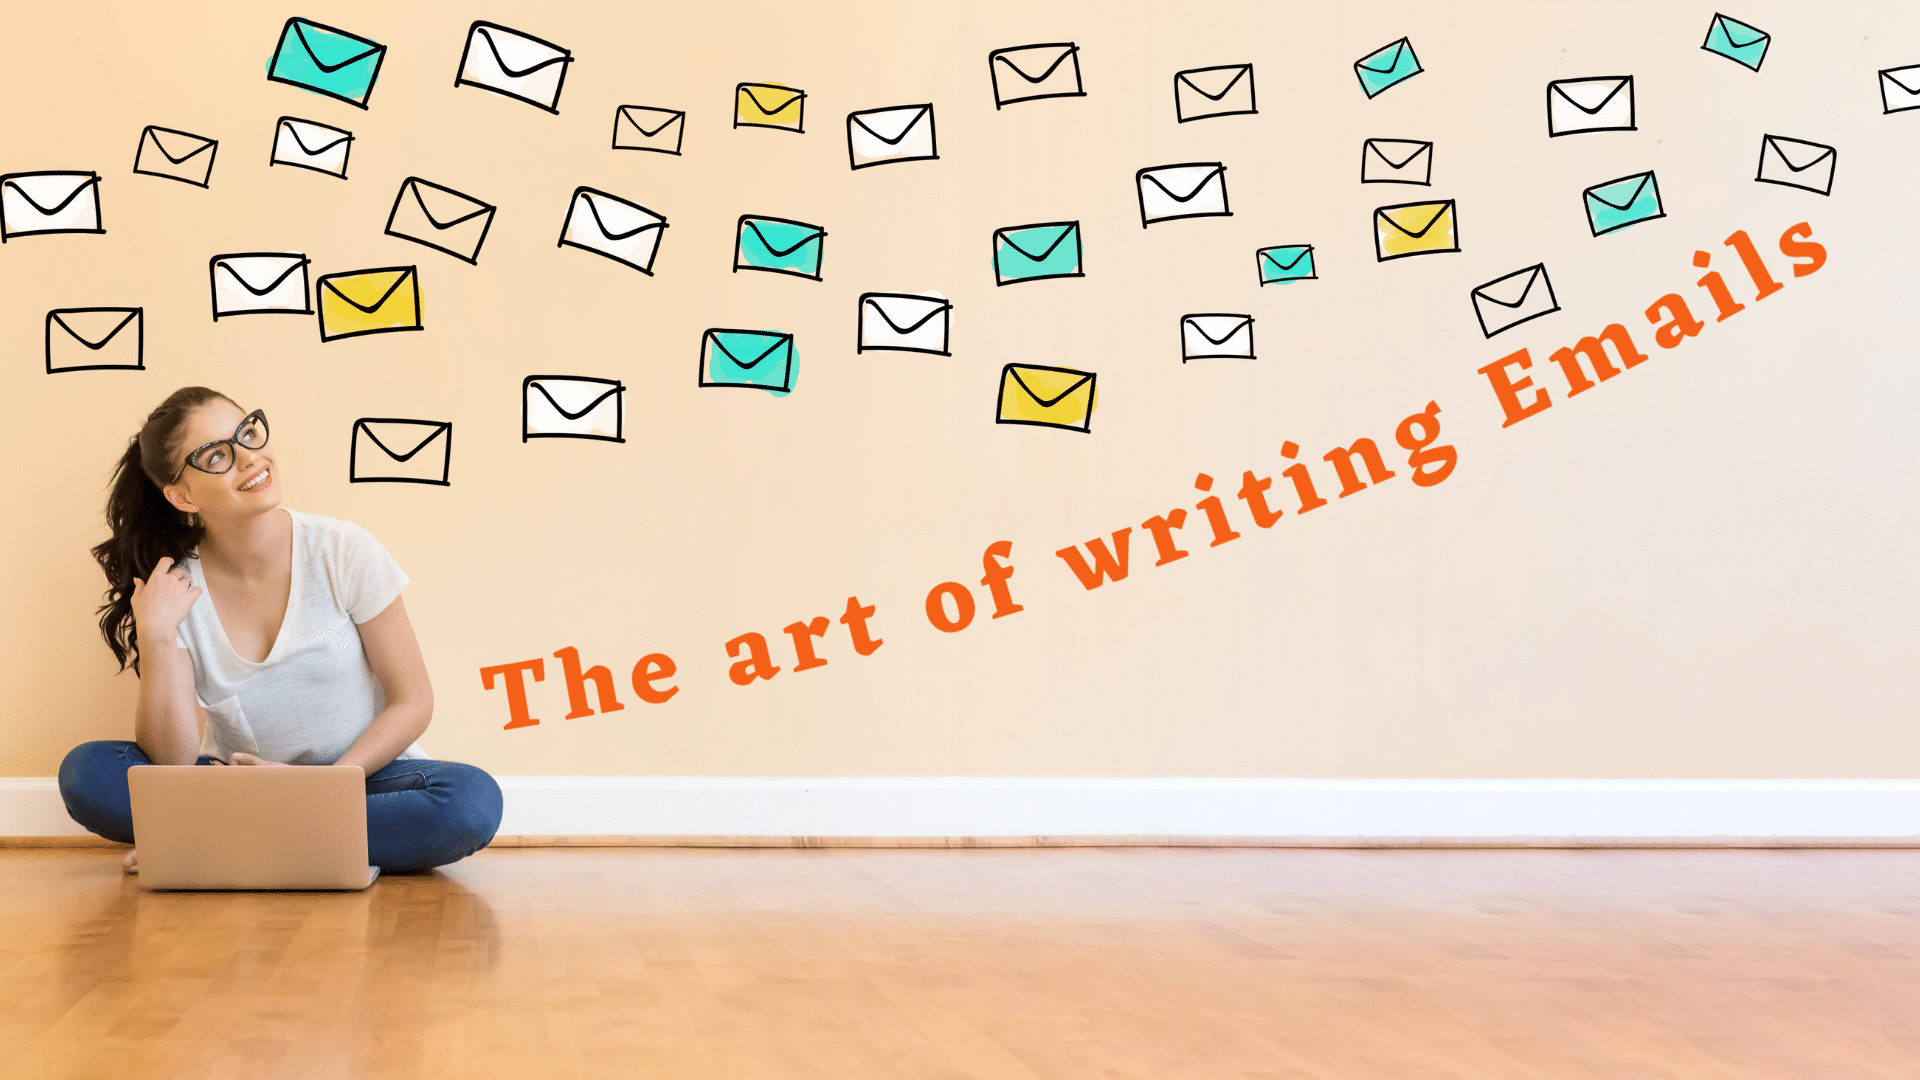 email-writing-is-an-art-in-itself